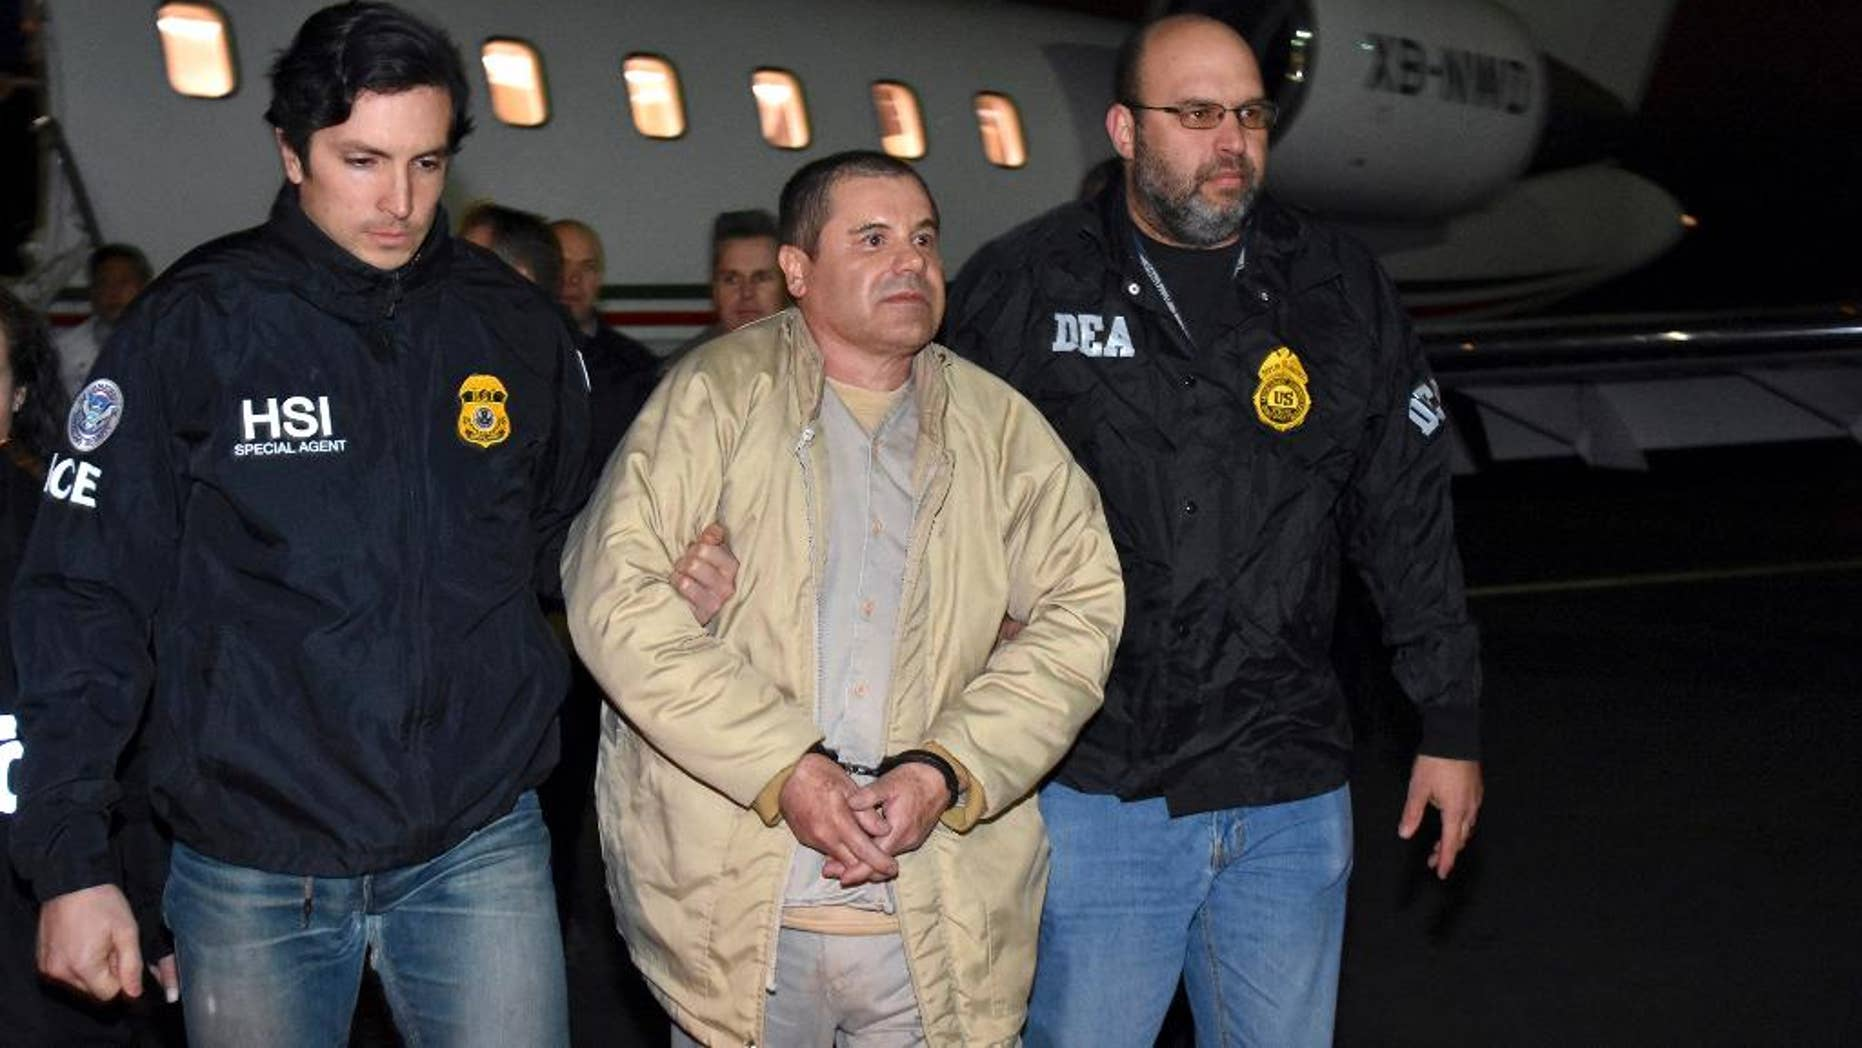 "FILE - In this Jan. 19, 2017 file photo provided by U.S. law enforcement, authorities escort Joaquin ""El Chapo"" Guzman, center, from a plane to a waiting caravan of SUVs at Long Island MacArthur Airport, in Ronkonkoma, N.Y. U.S. District Judge Brian Cogan ruled Thursday, May 4, 2017, that Guzman needs to stay in solitary confinement at a New York City lockup to keep him from trying to control his drug-trafficking empire from behind bars. Cogan rejected a request by Guzman's defense team to order him released from an ultrahigh-security wing of a jail in lower Manhattan and be allowed in the general inmate population and receive visitors. (U.S. law enforcement via AP, File)"